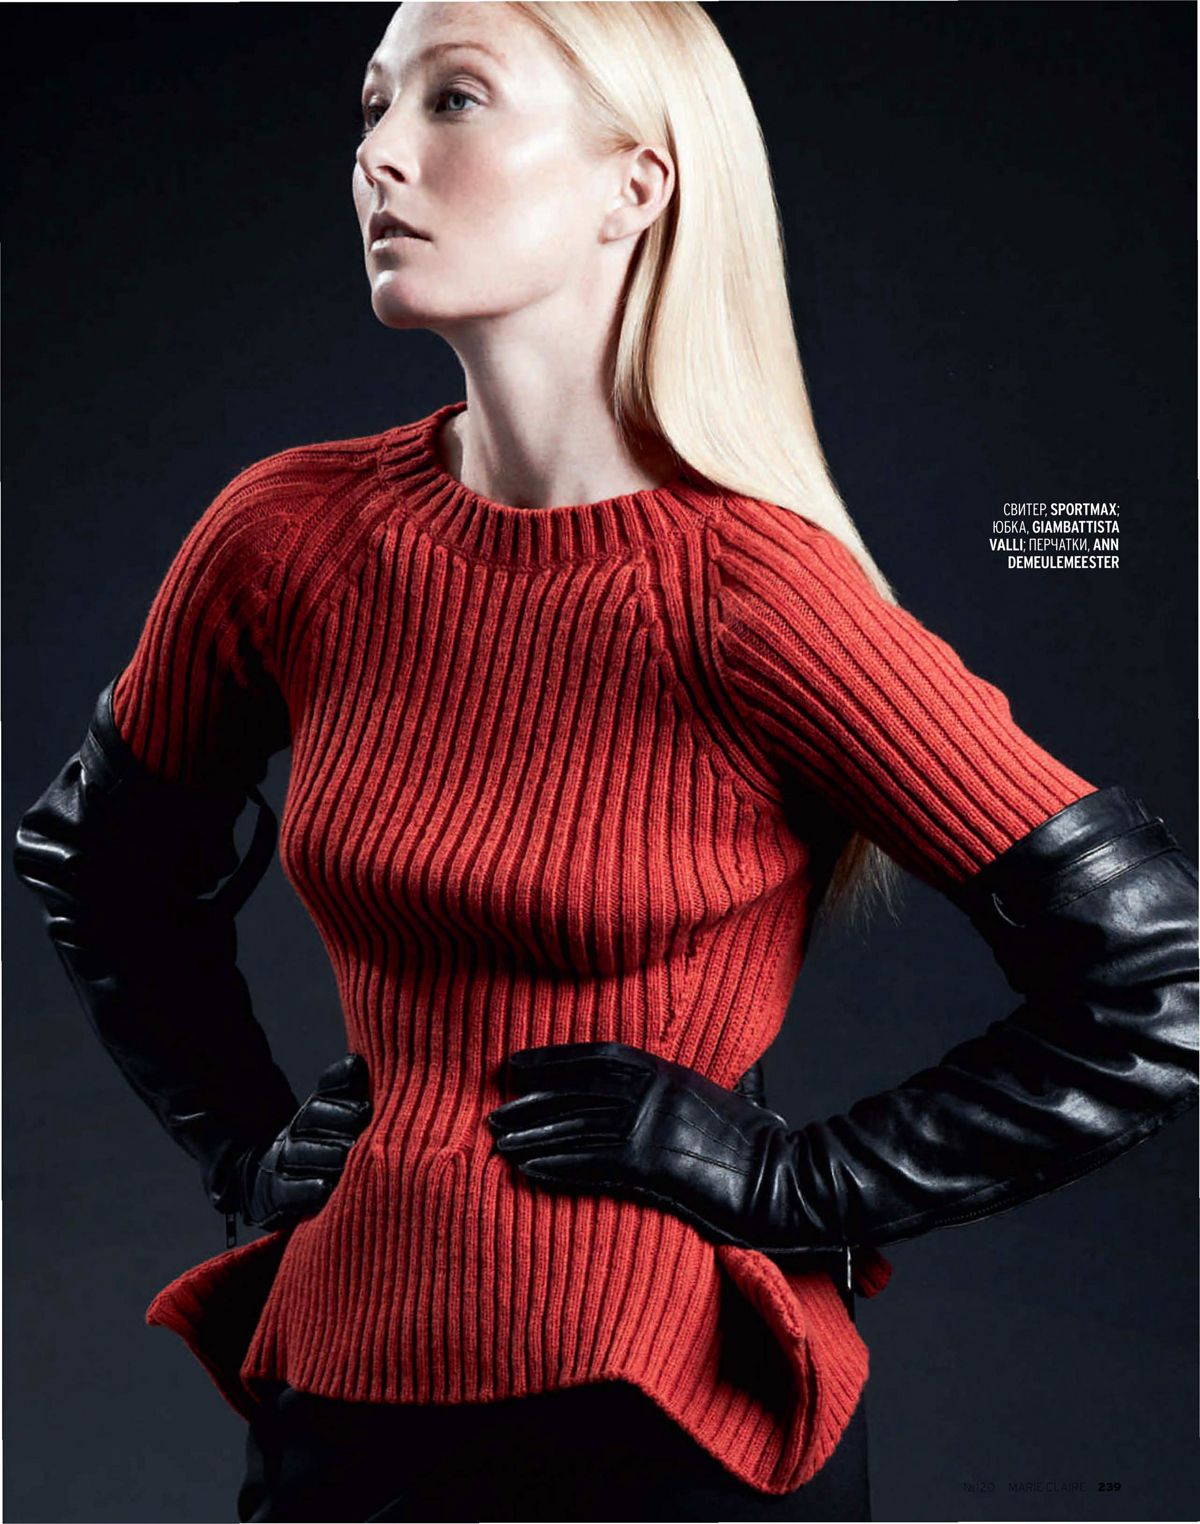 Ladies leather gloves cape town - Glove Fashion Maggie Rizer In Ann Demeulemeester Leather Opera Gloves Marie Claire Russia